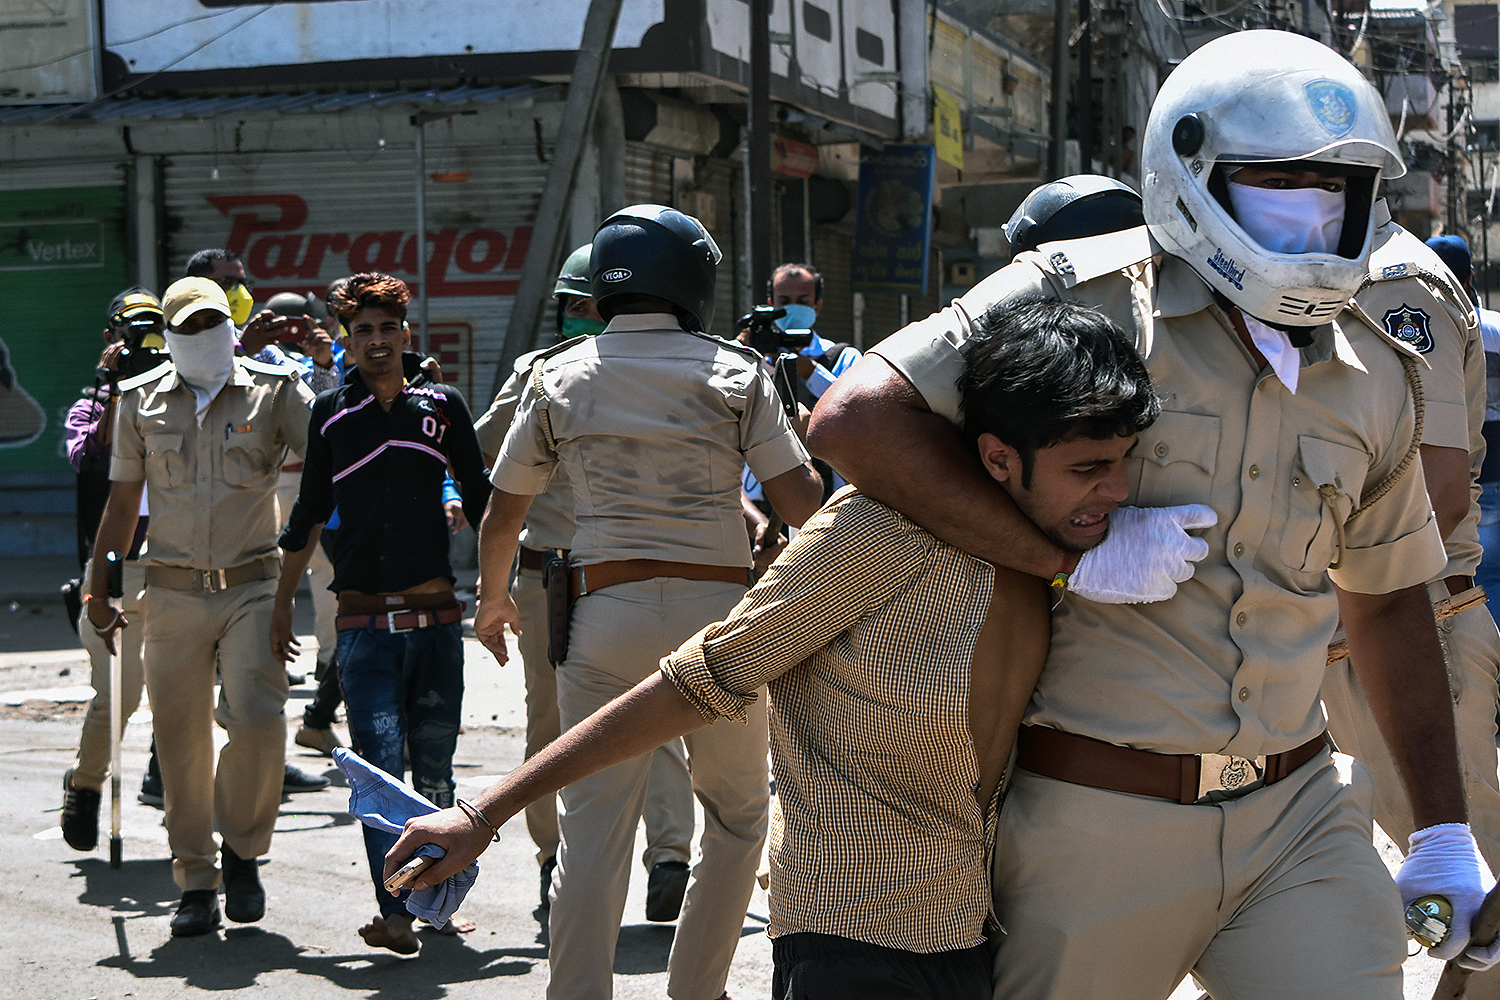 Gujarat police detain stranded migrant workers in the Surat district of India on May 4 during a protest demanding that the government let them return home during the nationwide lockdown. STR/AFP via Getty Images